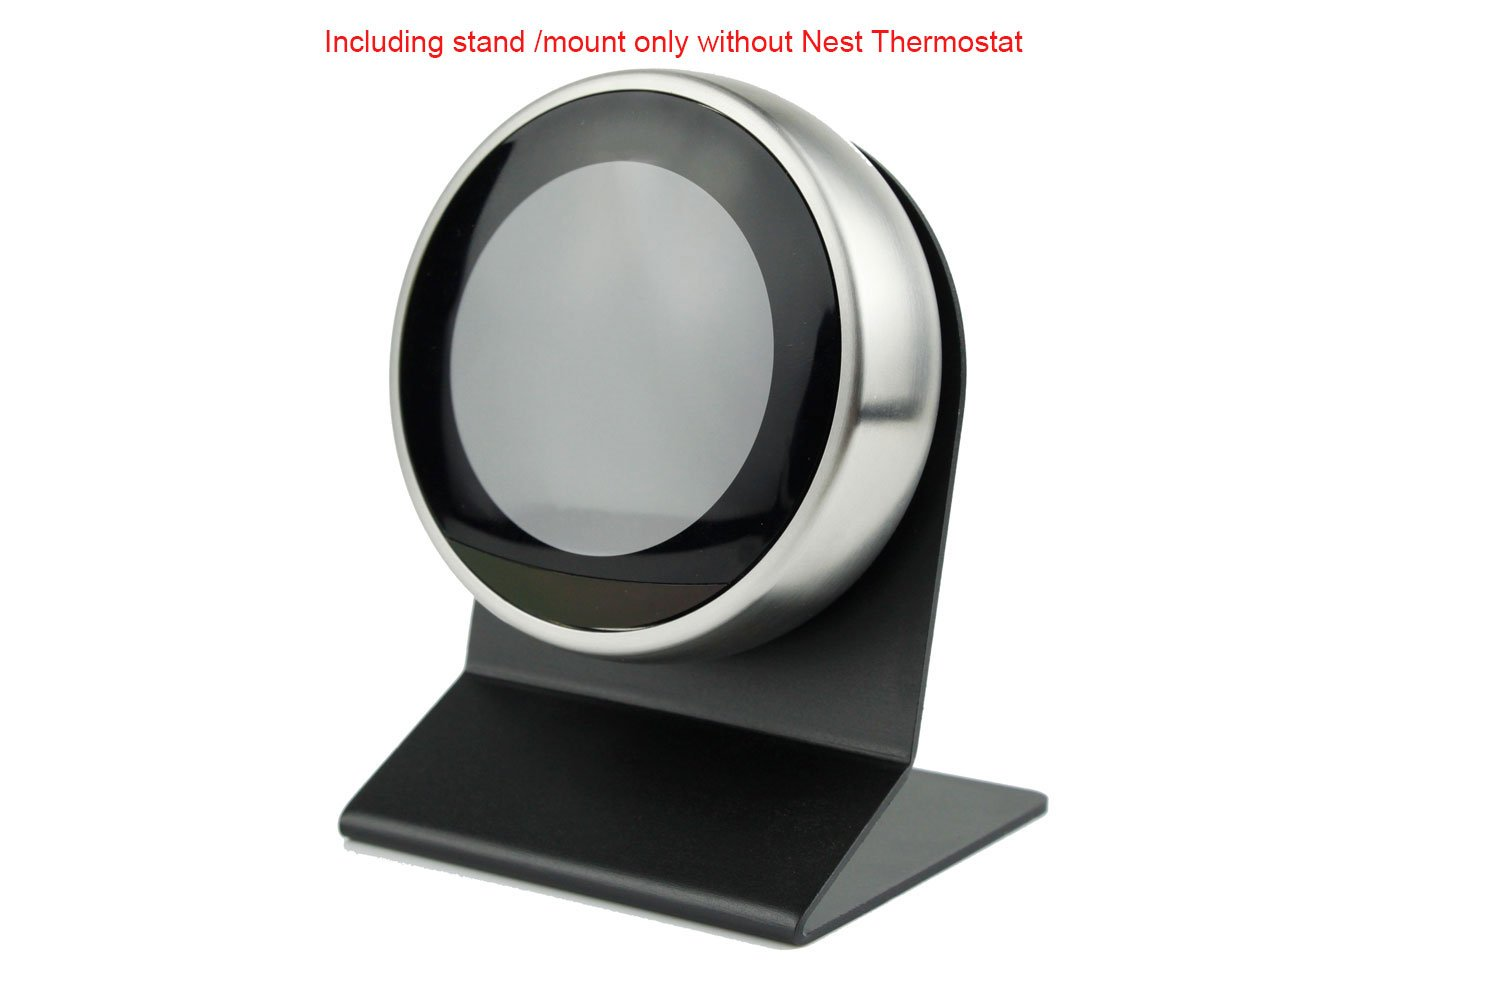 POPMAS Metal Stand/Tabletop display stand for Nest Thermostat 3rd, 2nd and 1st Generation Black